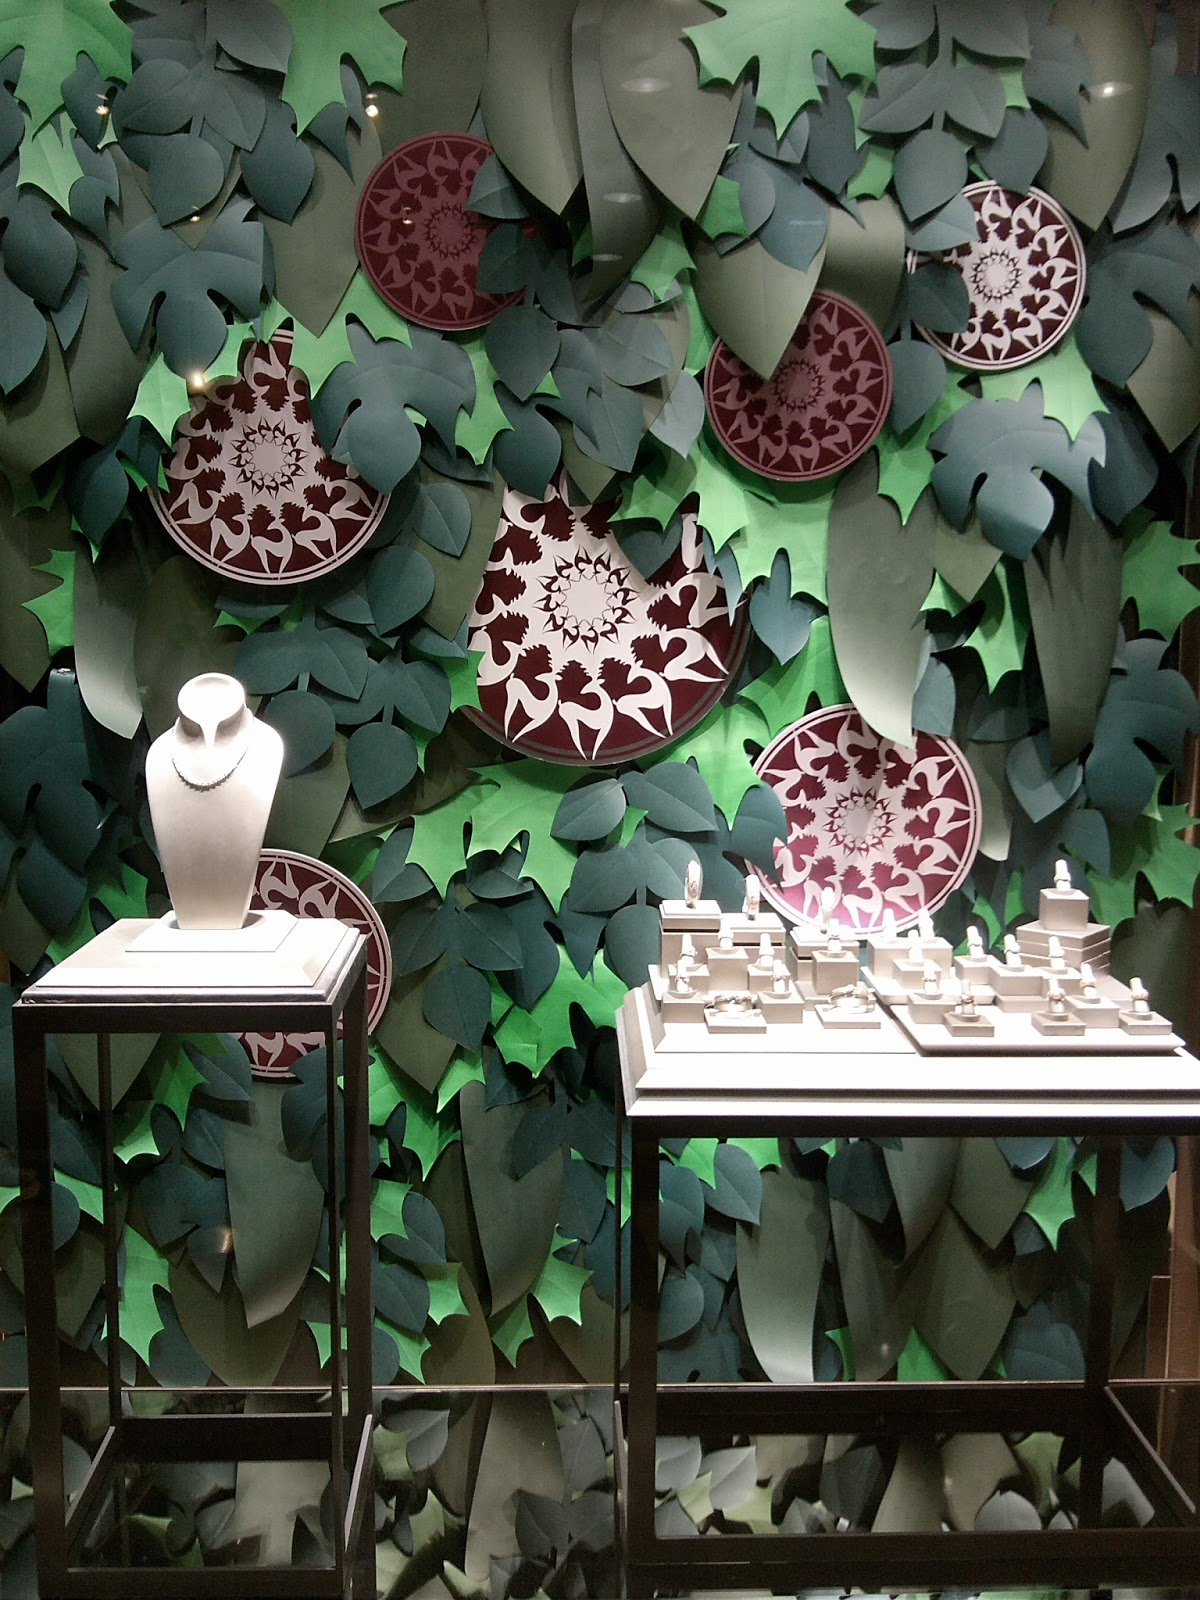 Spring Window Display Themes - Franck co tropical garden garden is the big theme this for window display this spring summer